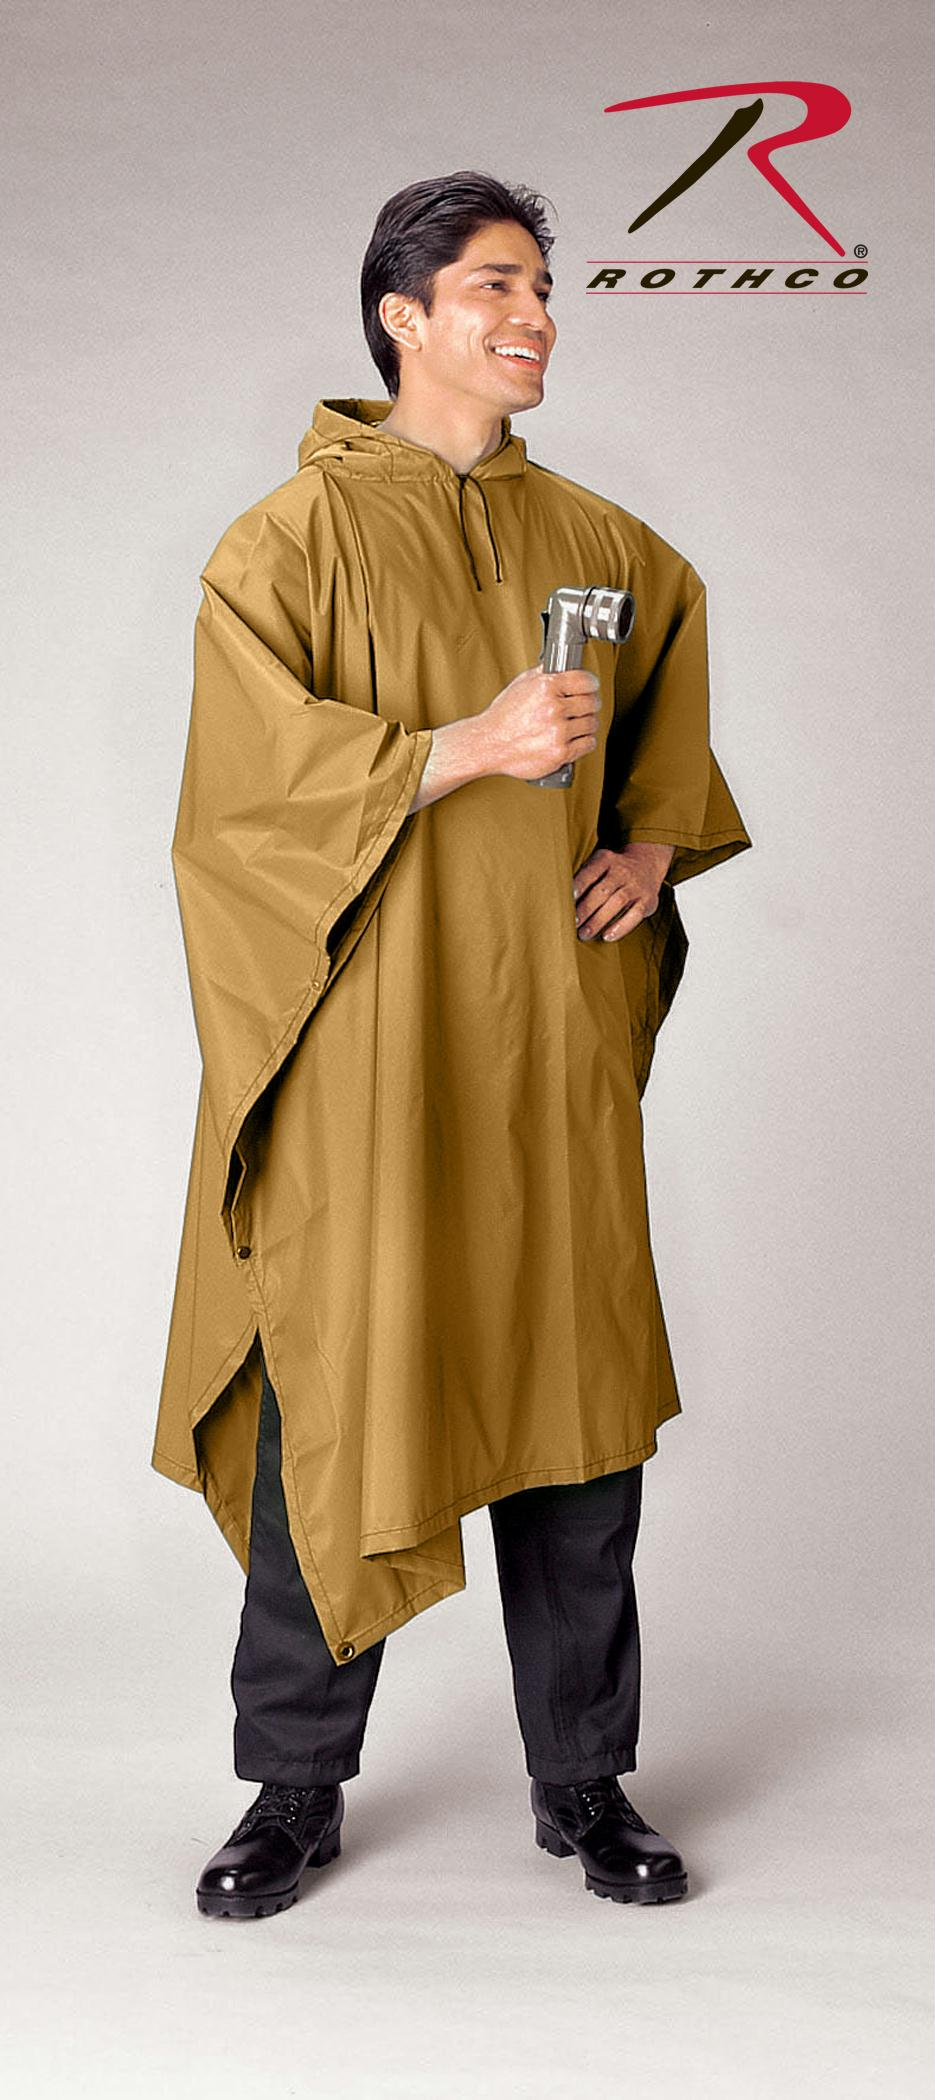 Rothco G.I. Type Military Rip-Stop Poncho